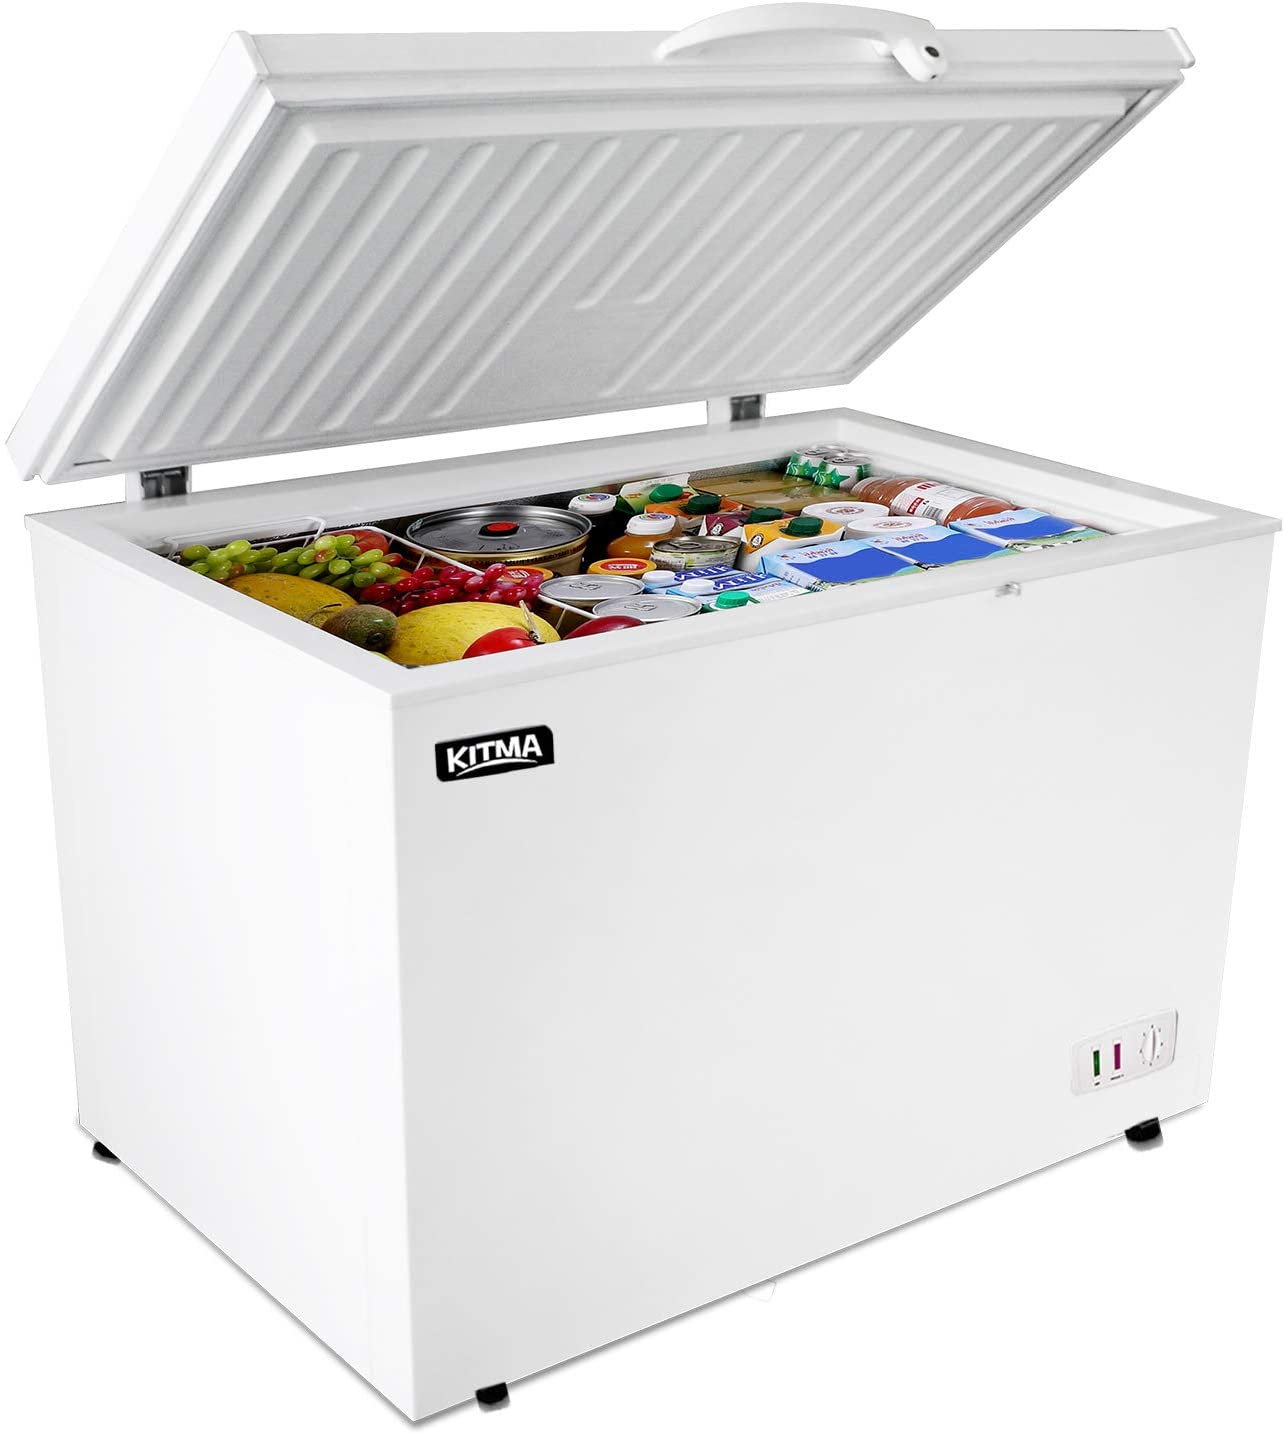 Best Chest Freezers for Apartments